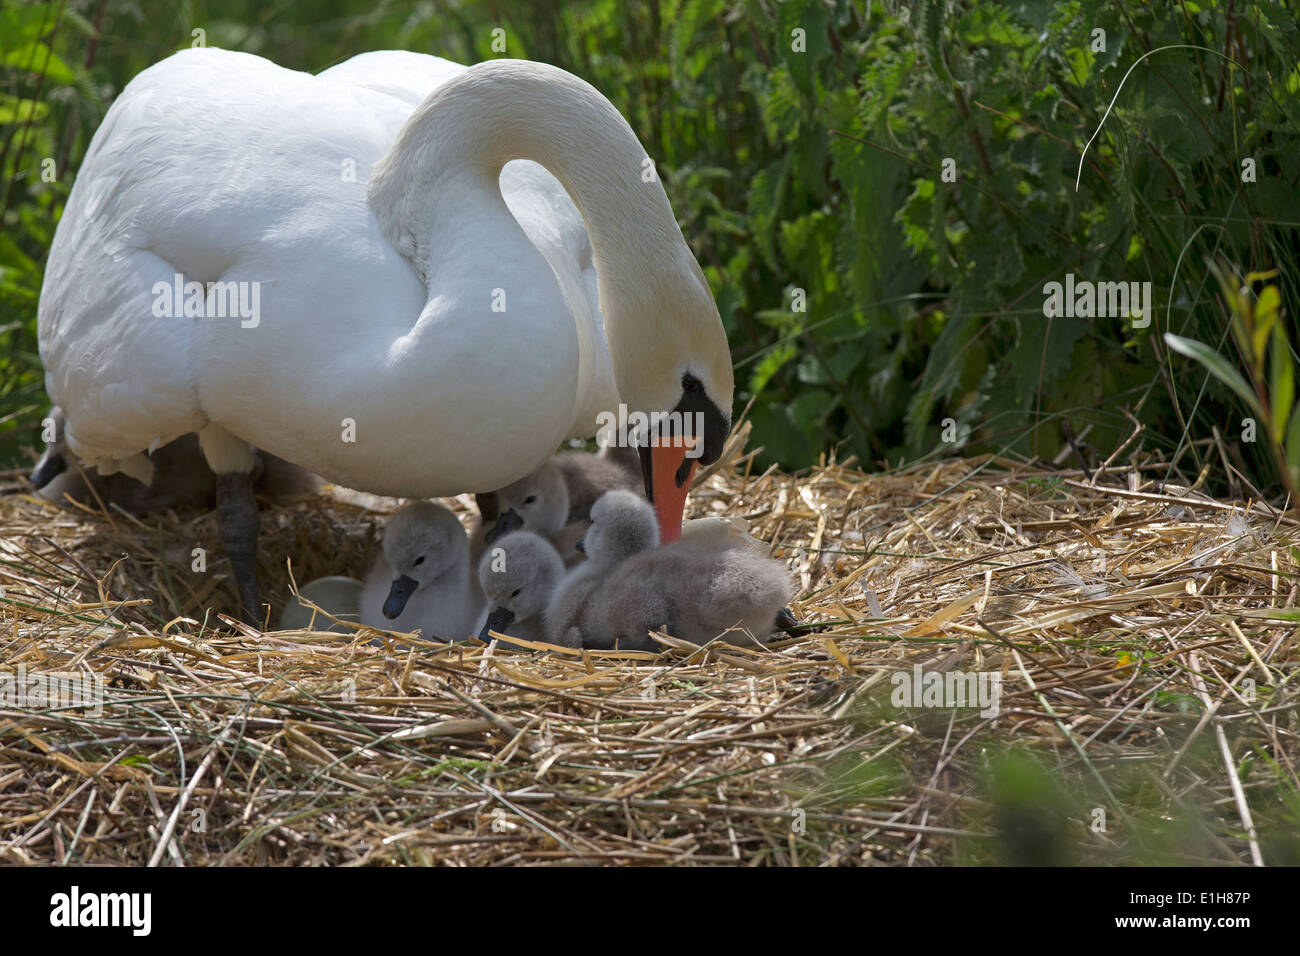 Mute Swan, Cygnus olor with cygnets on the nest - Stock Image